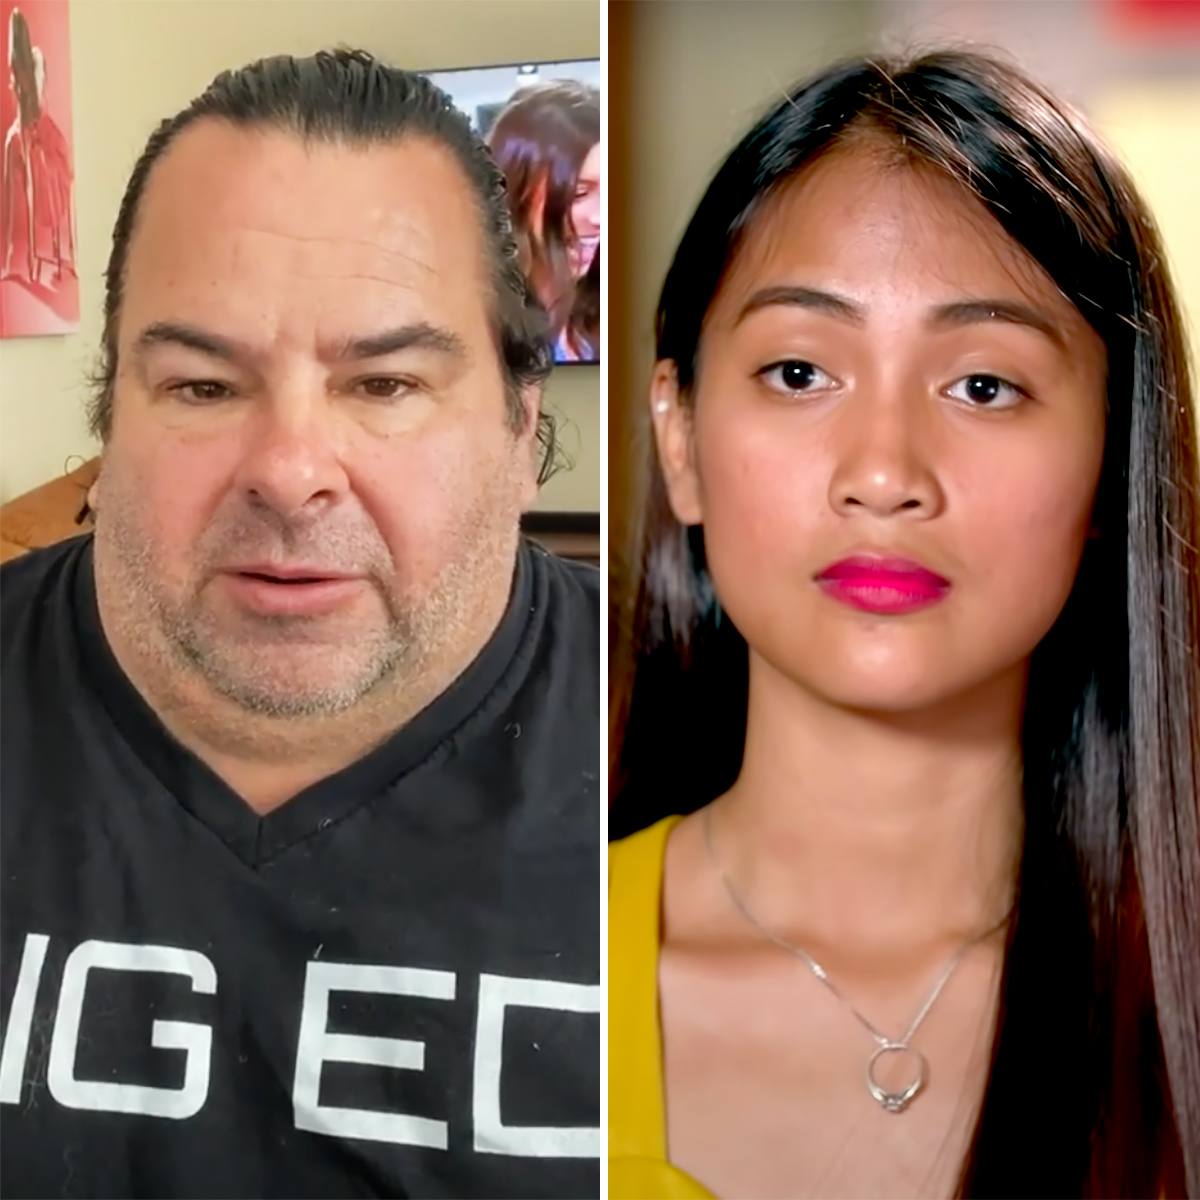 90 Day Fiance Big Ed Reacts to Rumors GF Rose Is Engaged to a Woman